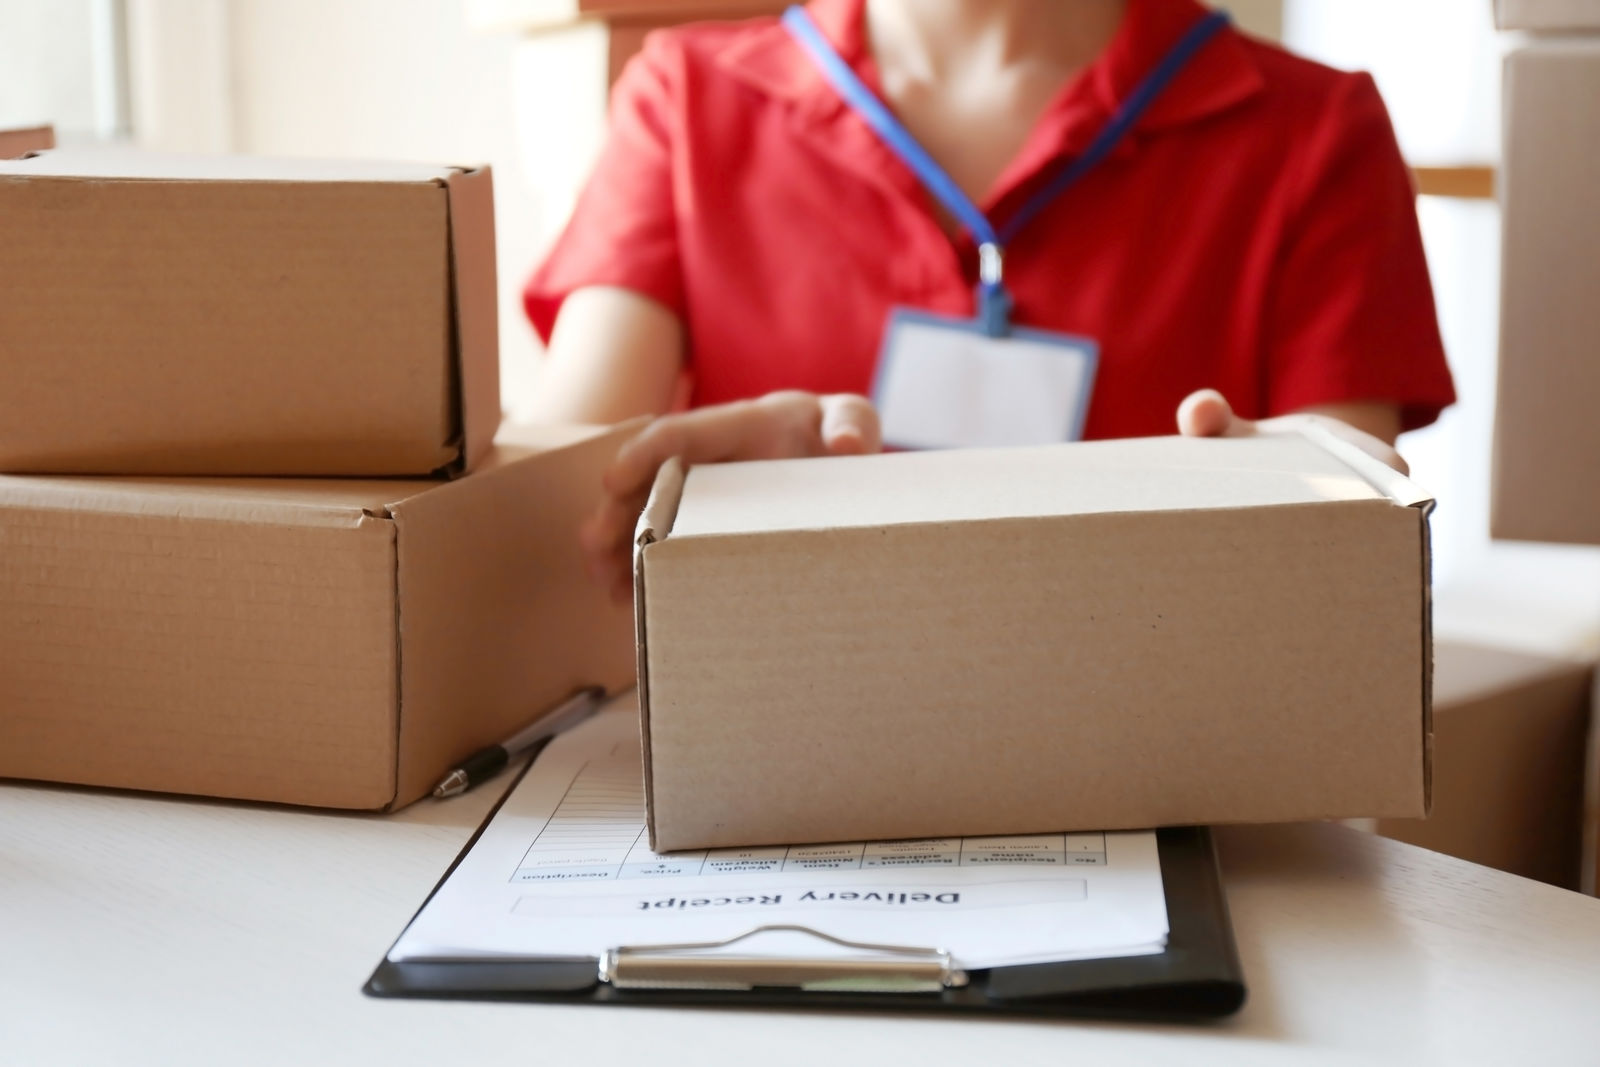 How long do packages stay with agents